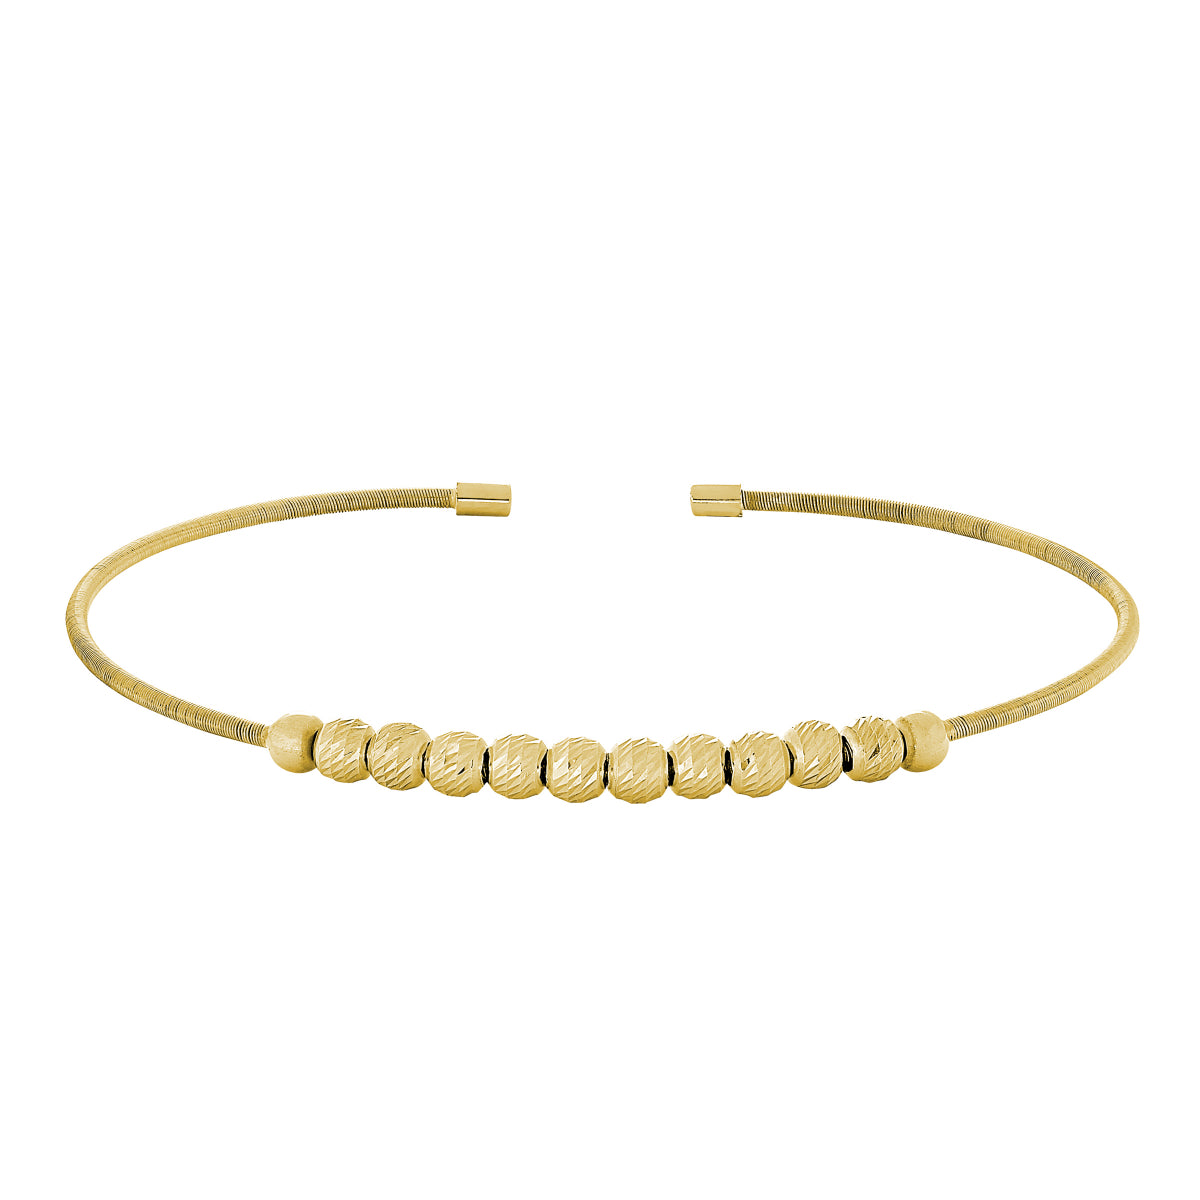 Bella Cavo Italian Cable Bracelet with Diamond Cut Spinning Beads